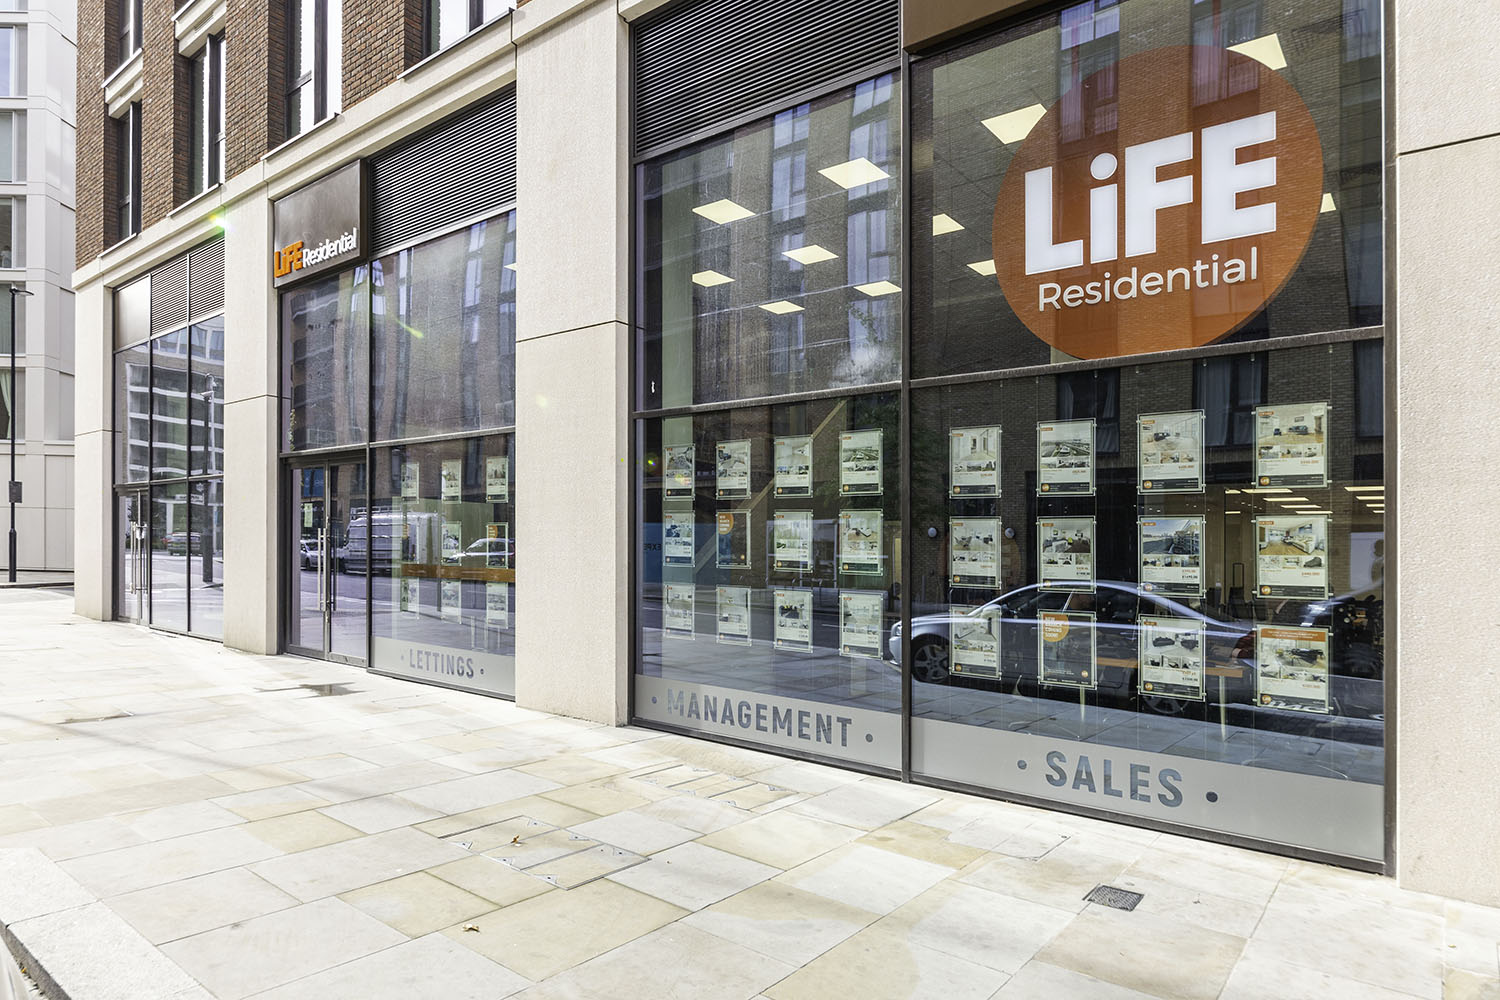 The LiFE Residential Royal Wharf branch is on-site